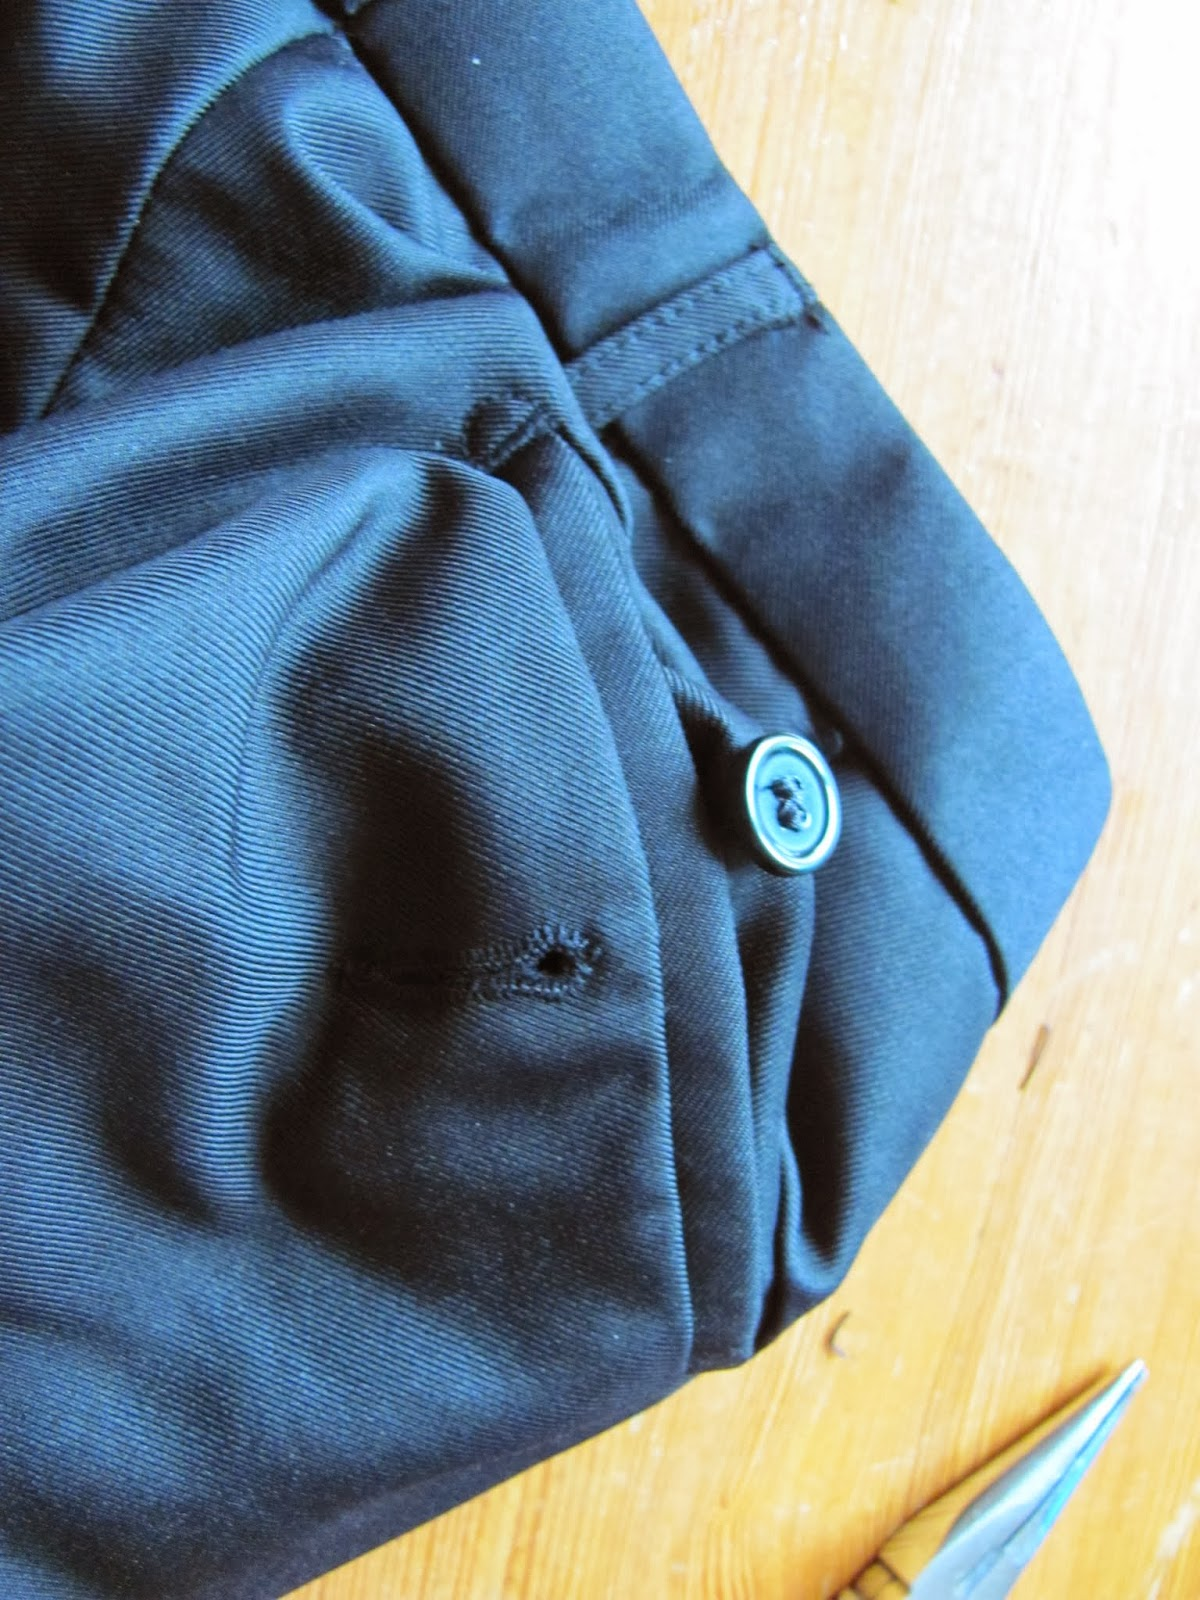 Repairing the back pocket button on black slacks